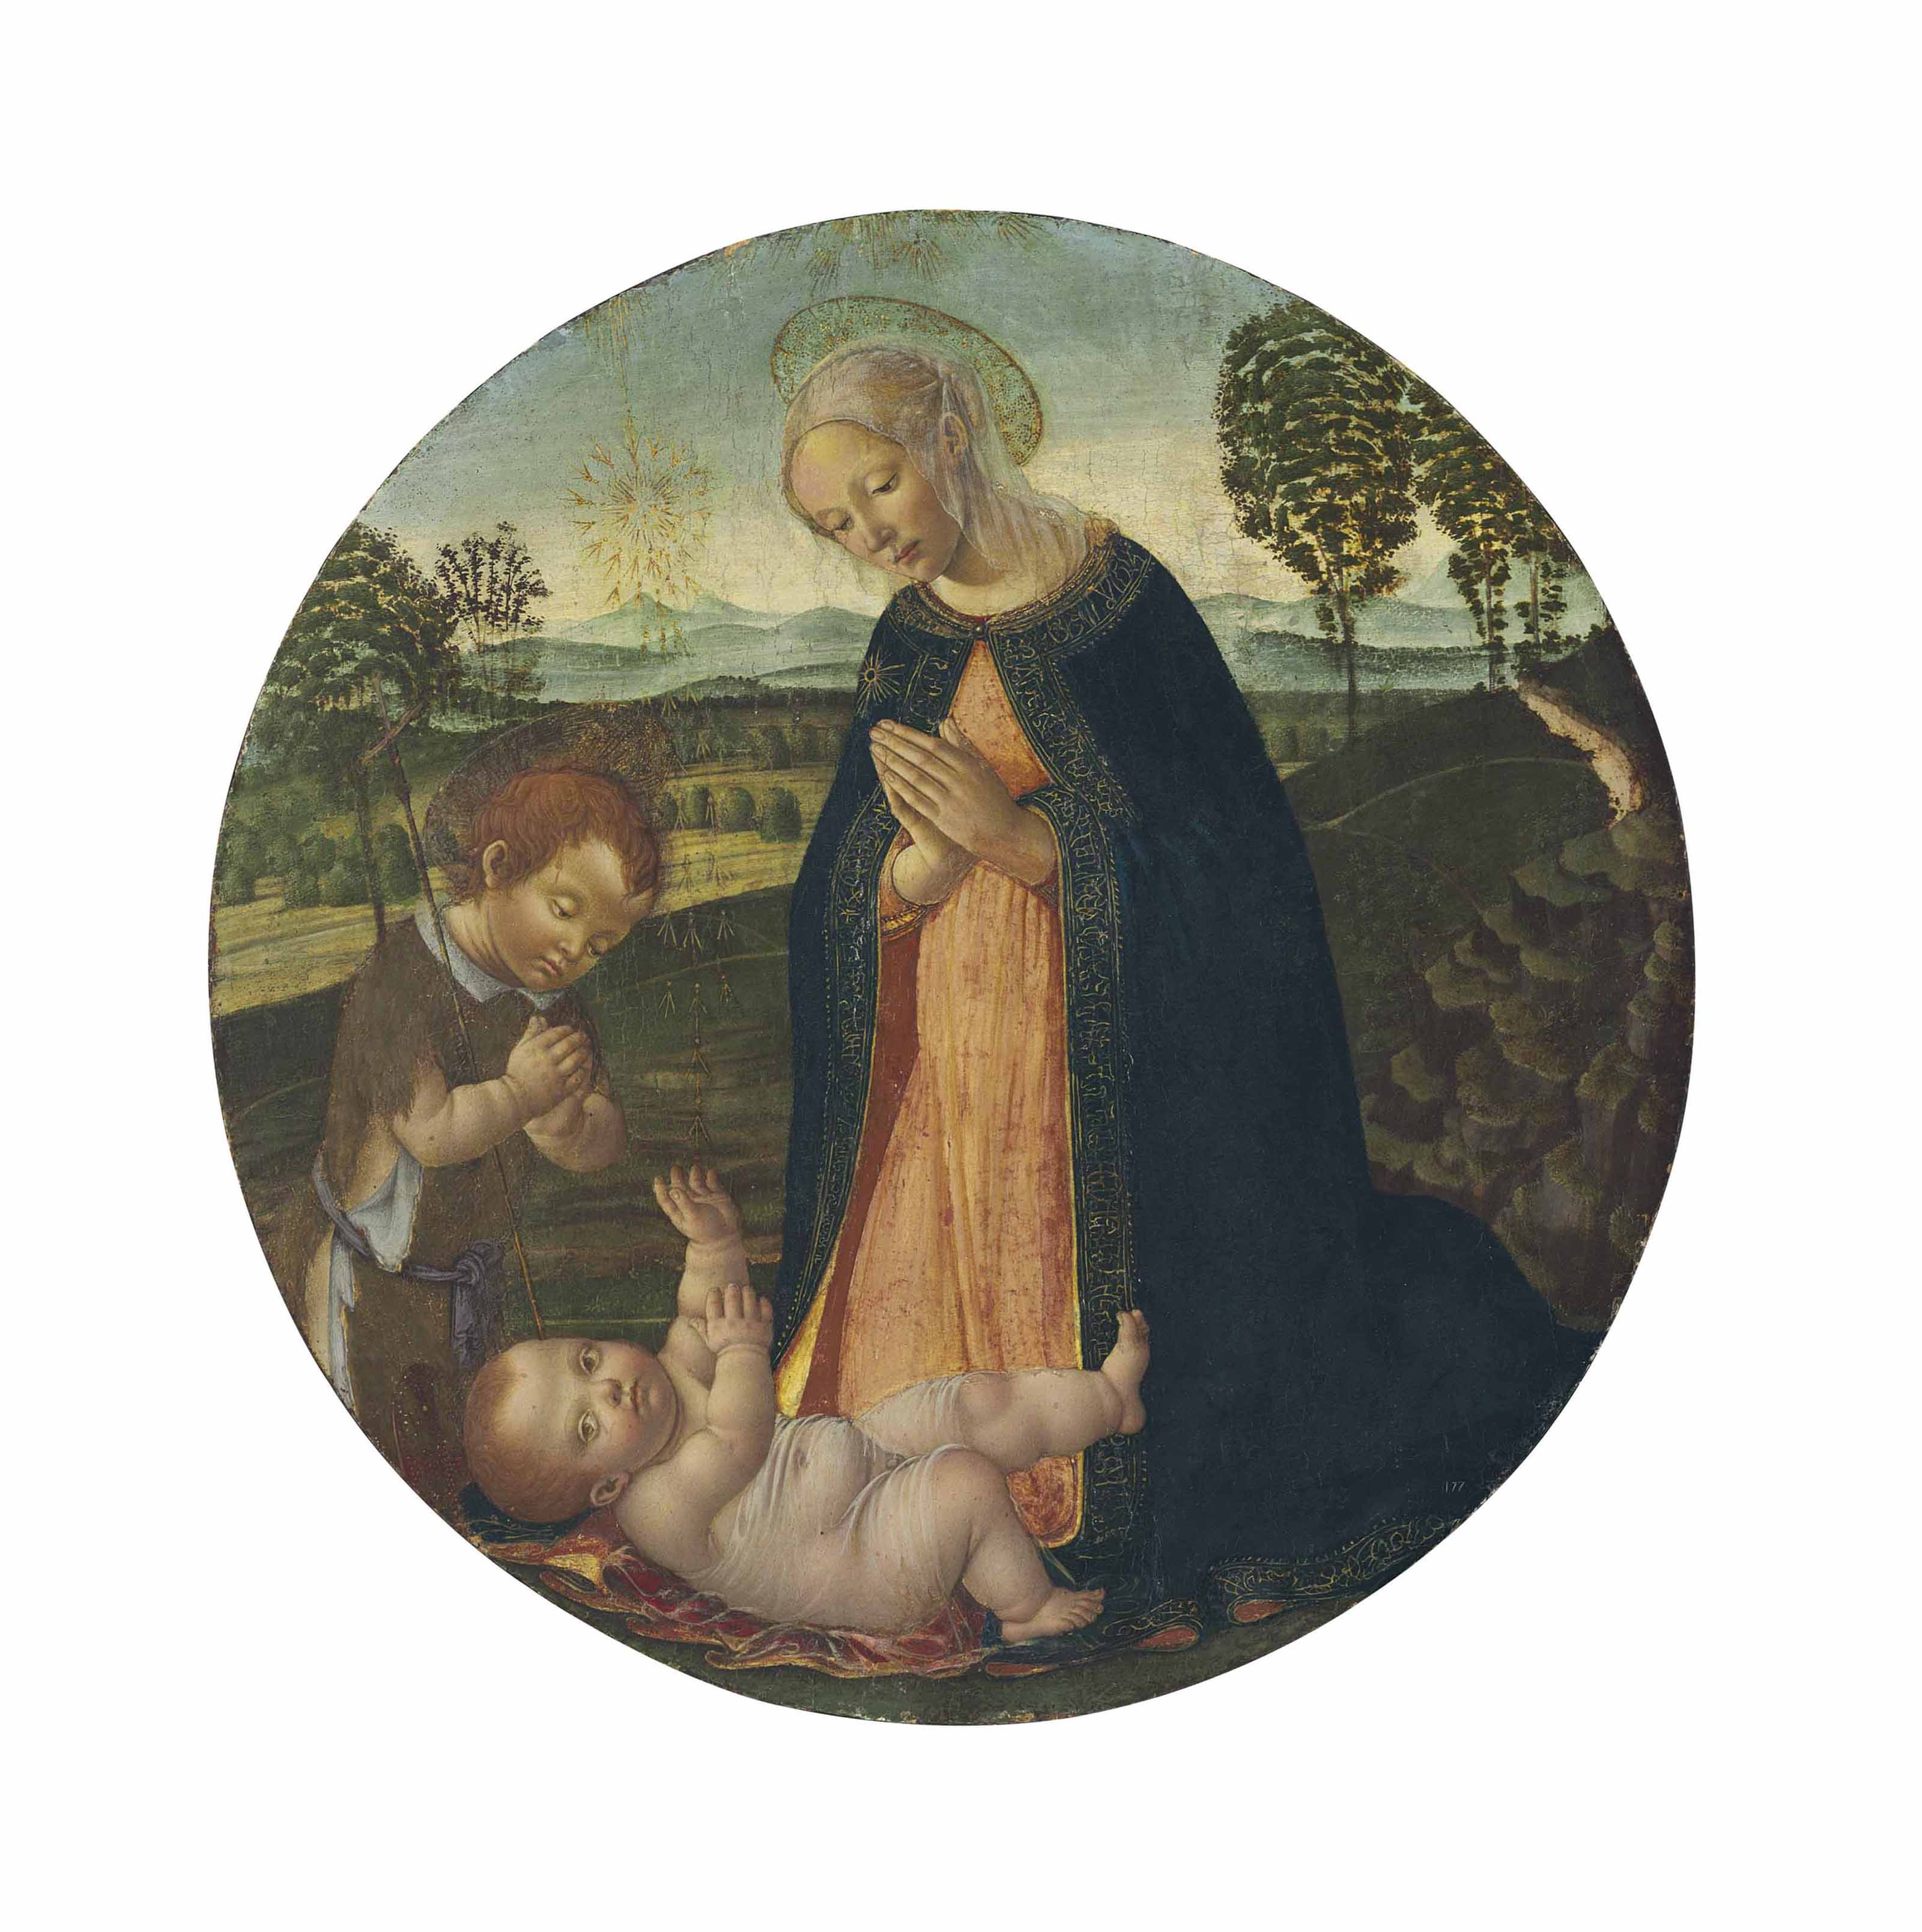 The Madonna and Child with the Infant Saint John the Baptist